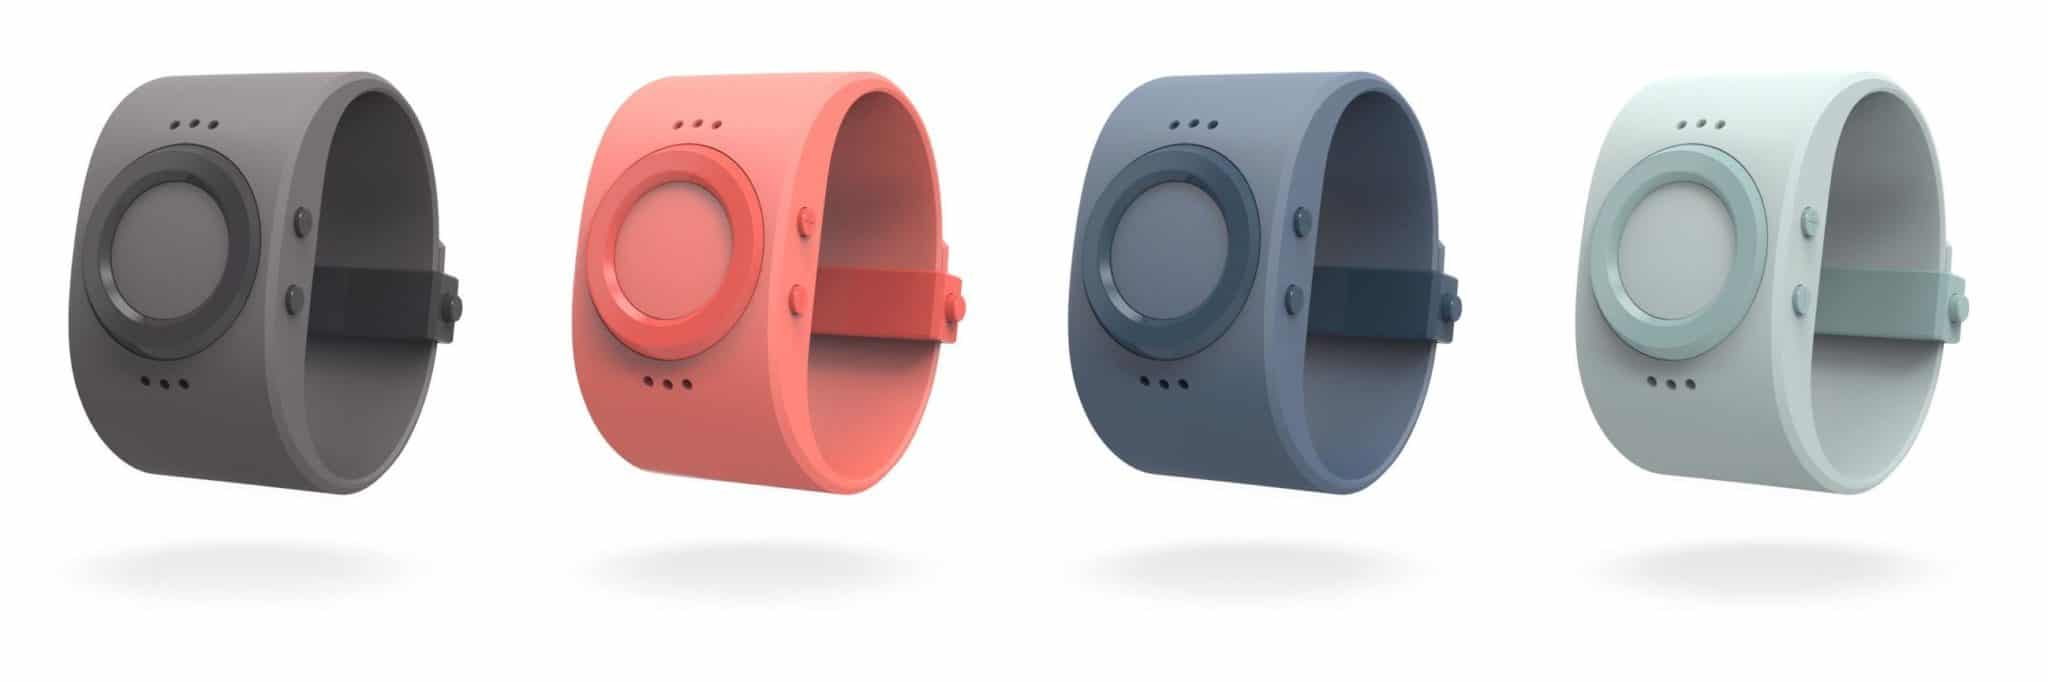 GPS trackers for kids: Wearable devices that keep your